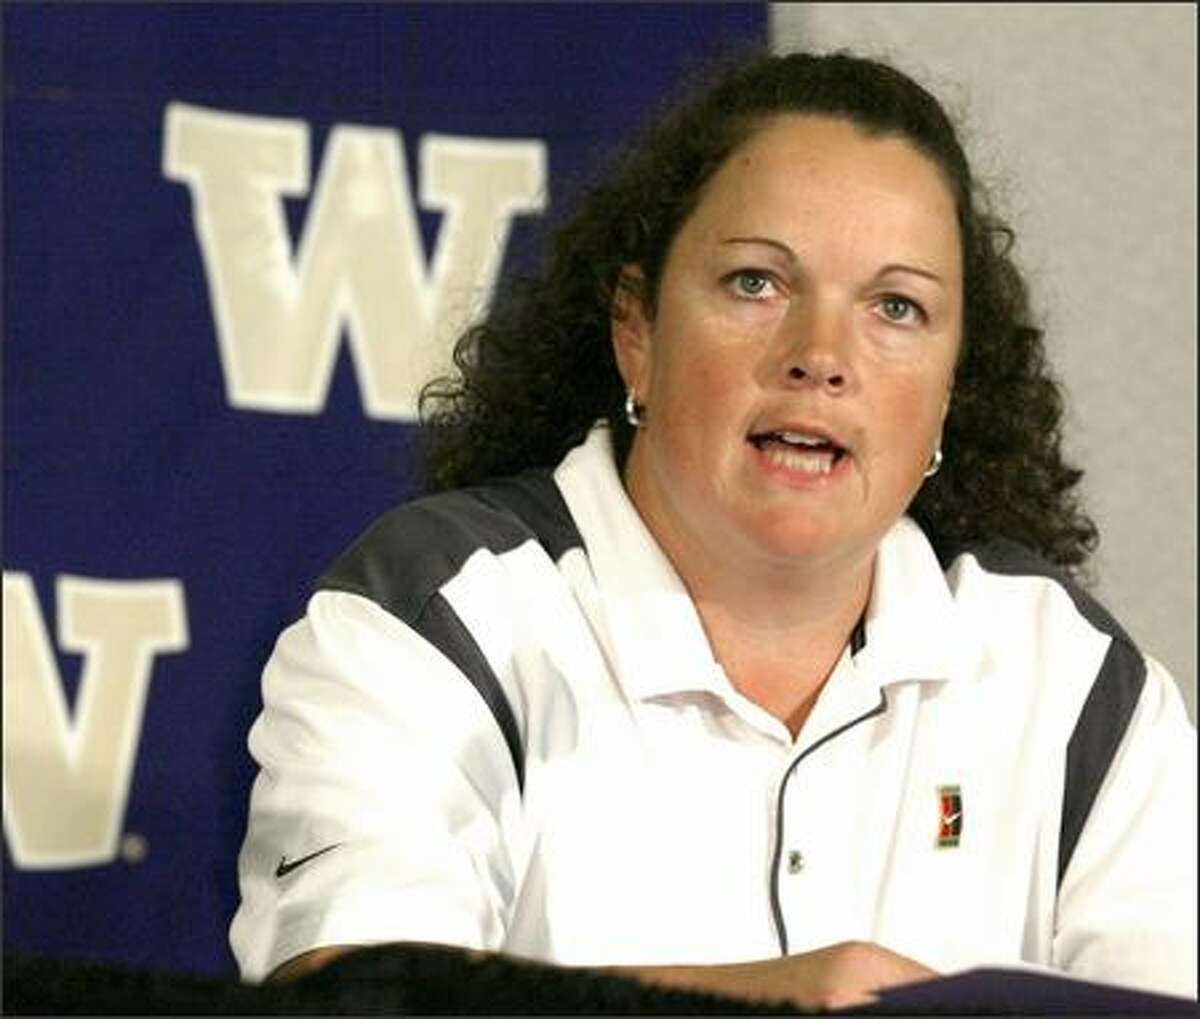 Former University of Washington softball coach Teresa Wilson is seen in this file photo from October 2003.